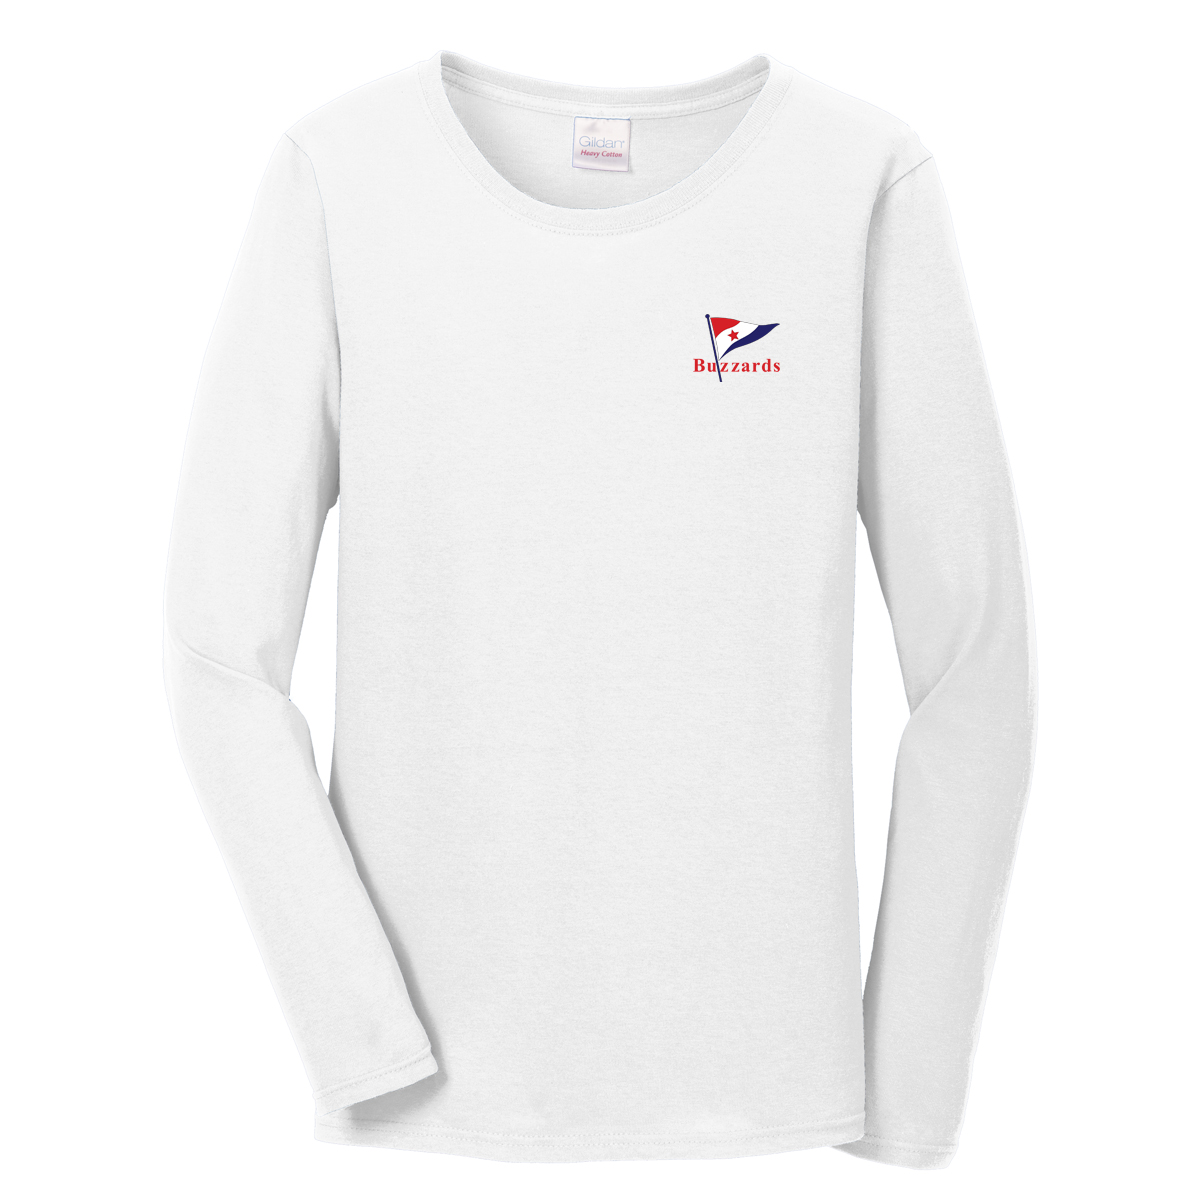 Buzzards Yacht Club - Women's Long Sleeve Cotton Tee (BUZ205)